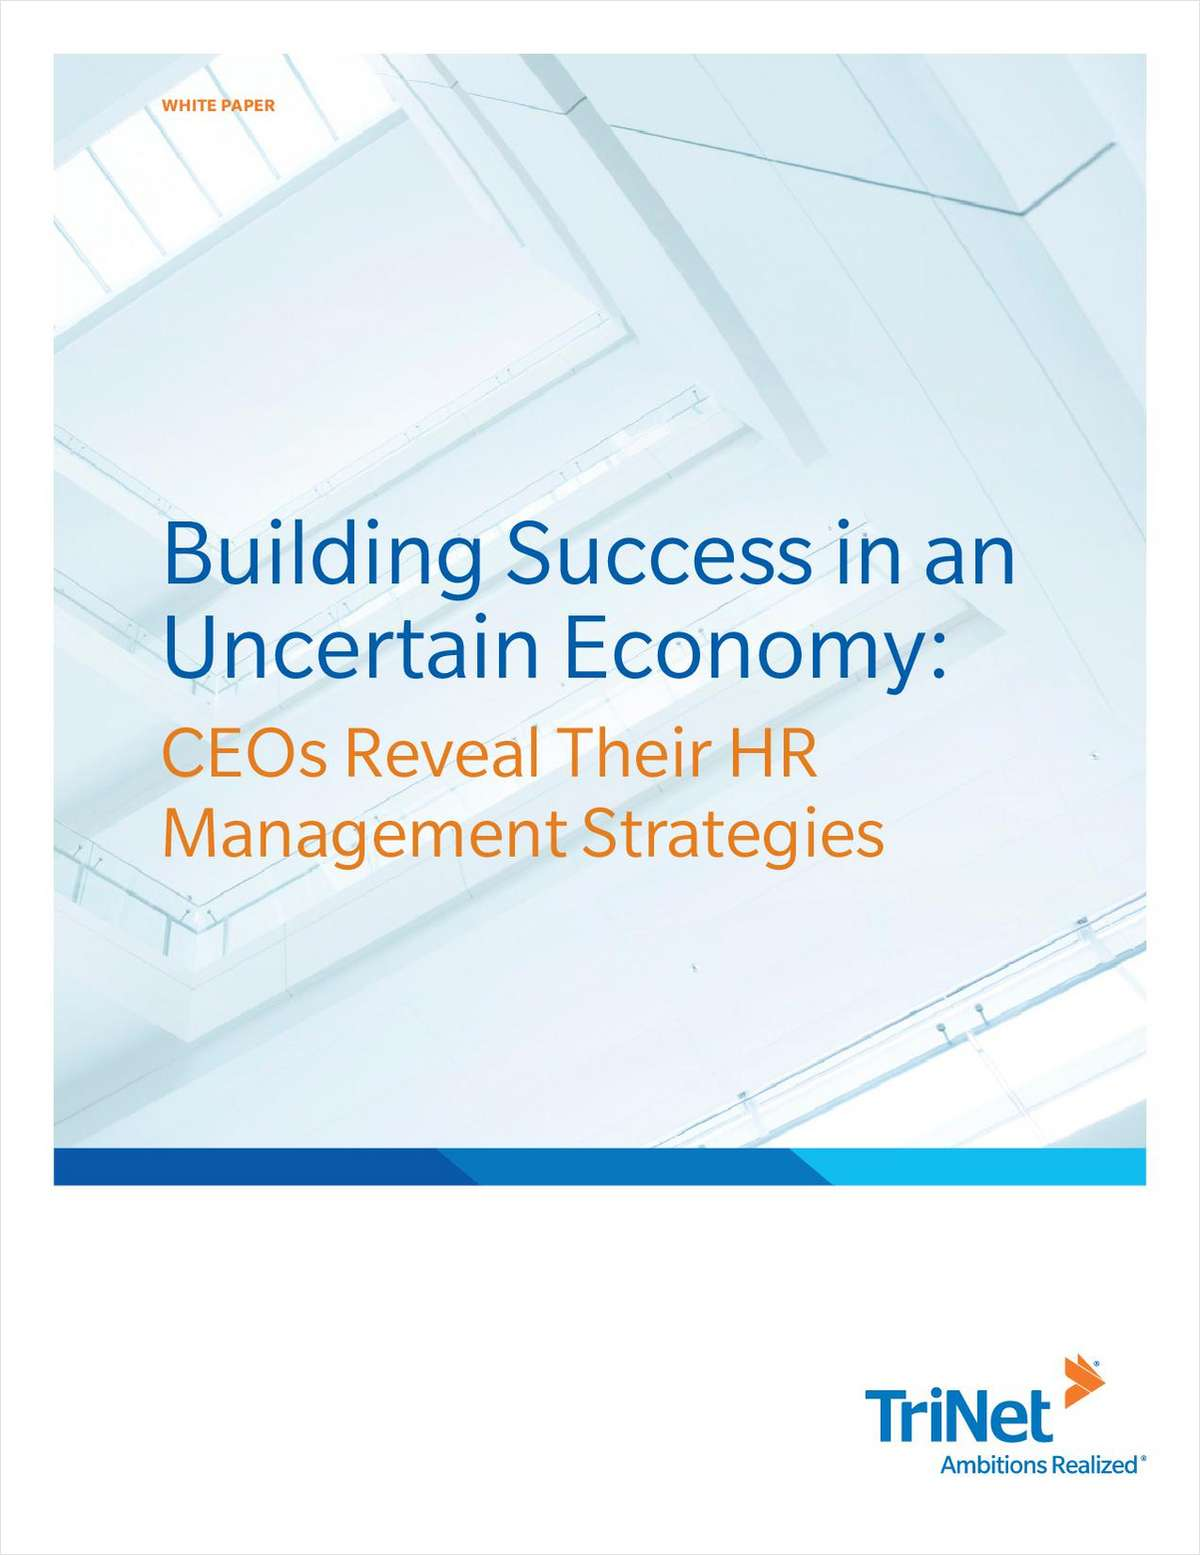 Building Success in an Uncertain Economy: CEOs Reveal Their HR Management Strategies